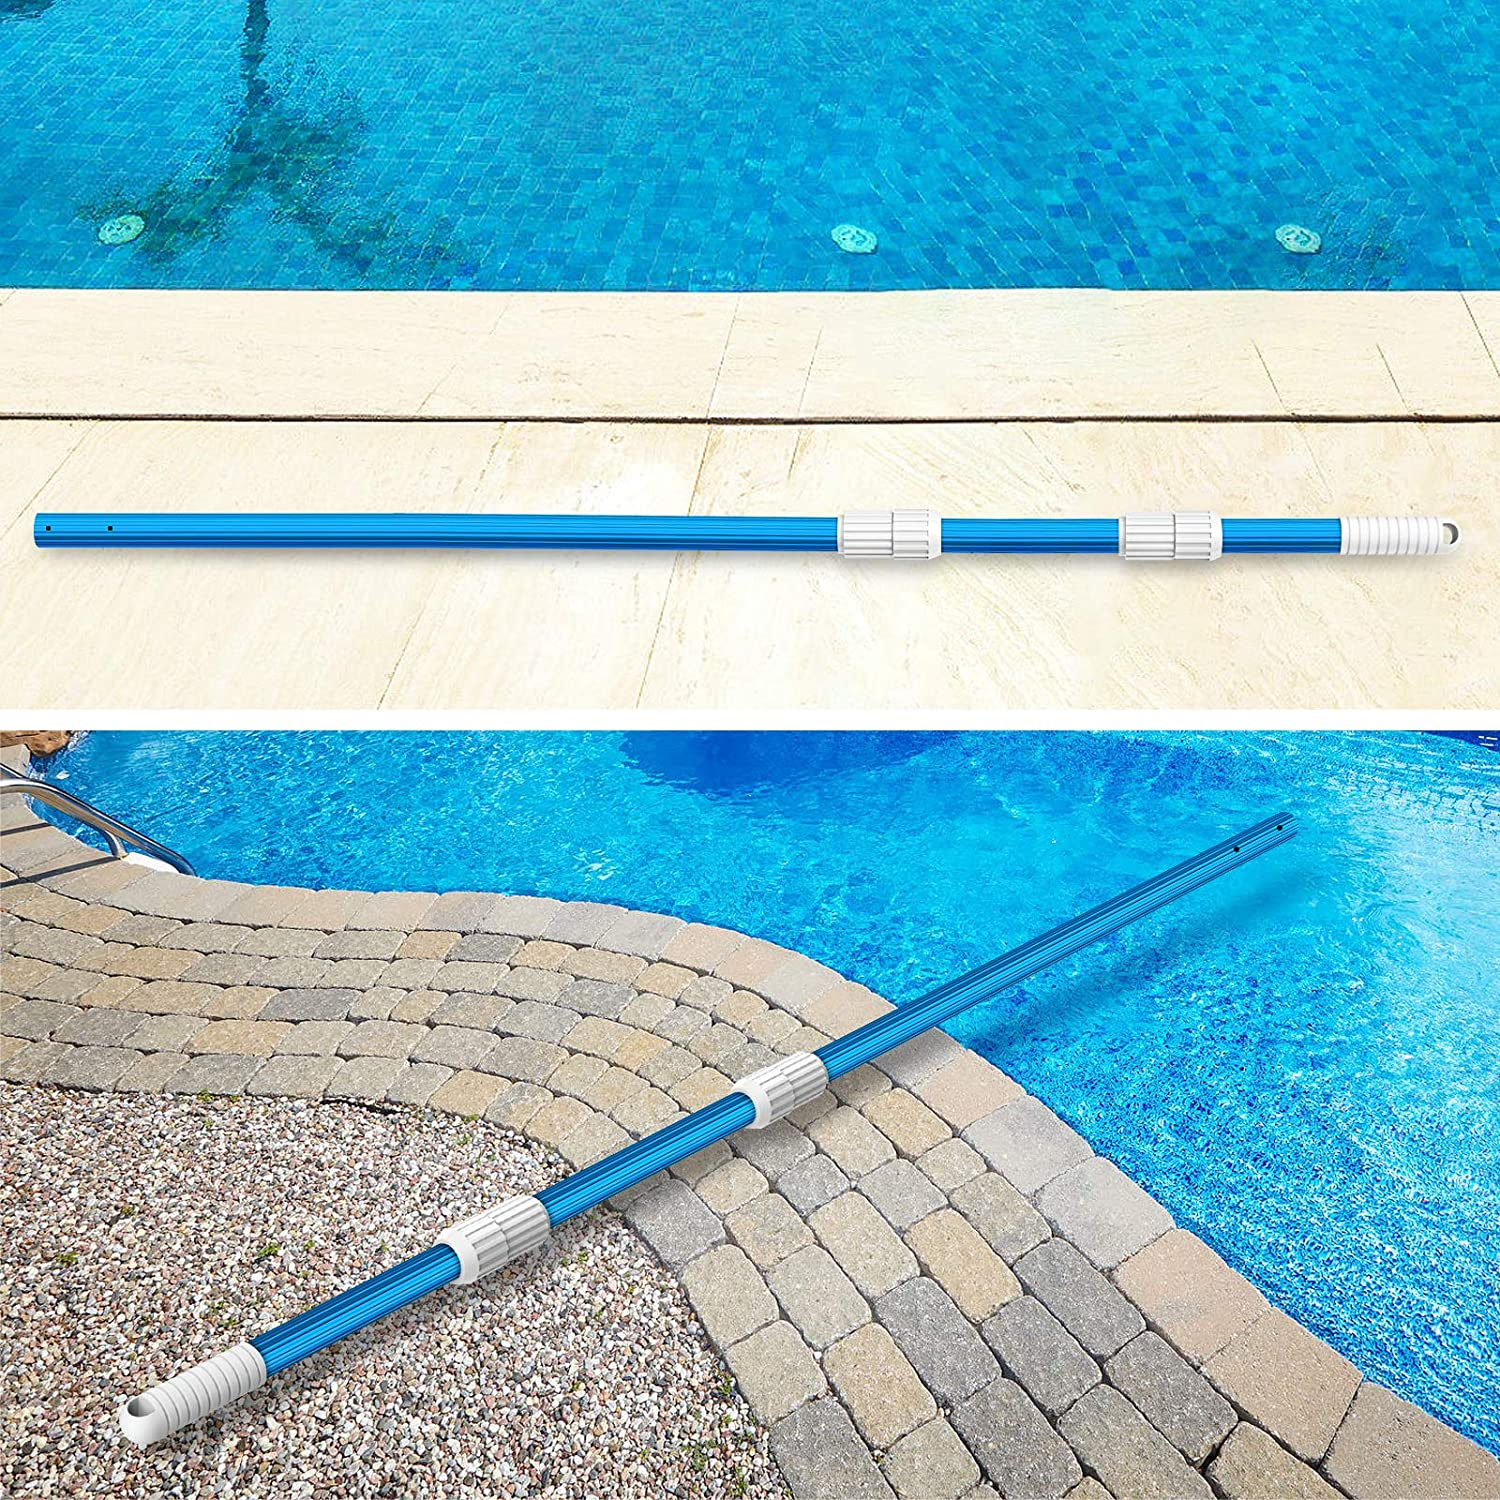 Brushes Vacuum Heads with Hoses BLIKA 16.5 Foot Blue Aluminum Telescopic Swimming Pool Pole Adjustable 3 Piece from 6.5 to 16.5ft Extension 1.30mm Thickness Rakes Attach Connect Skimmer Nets